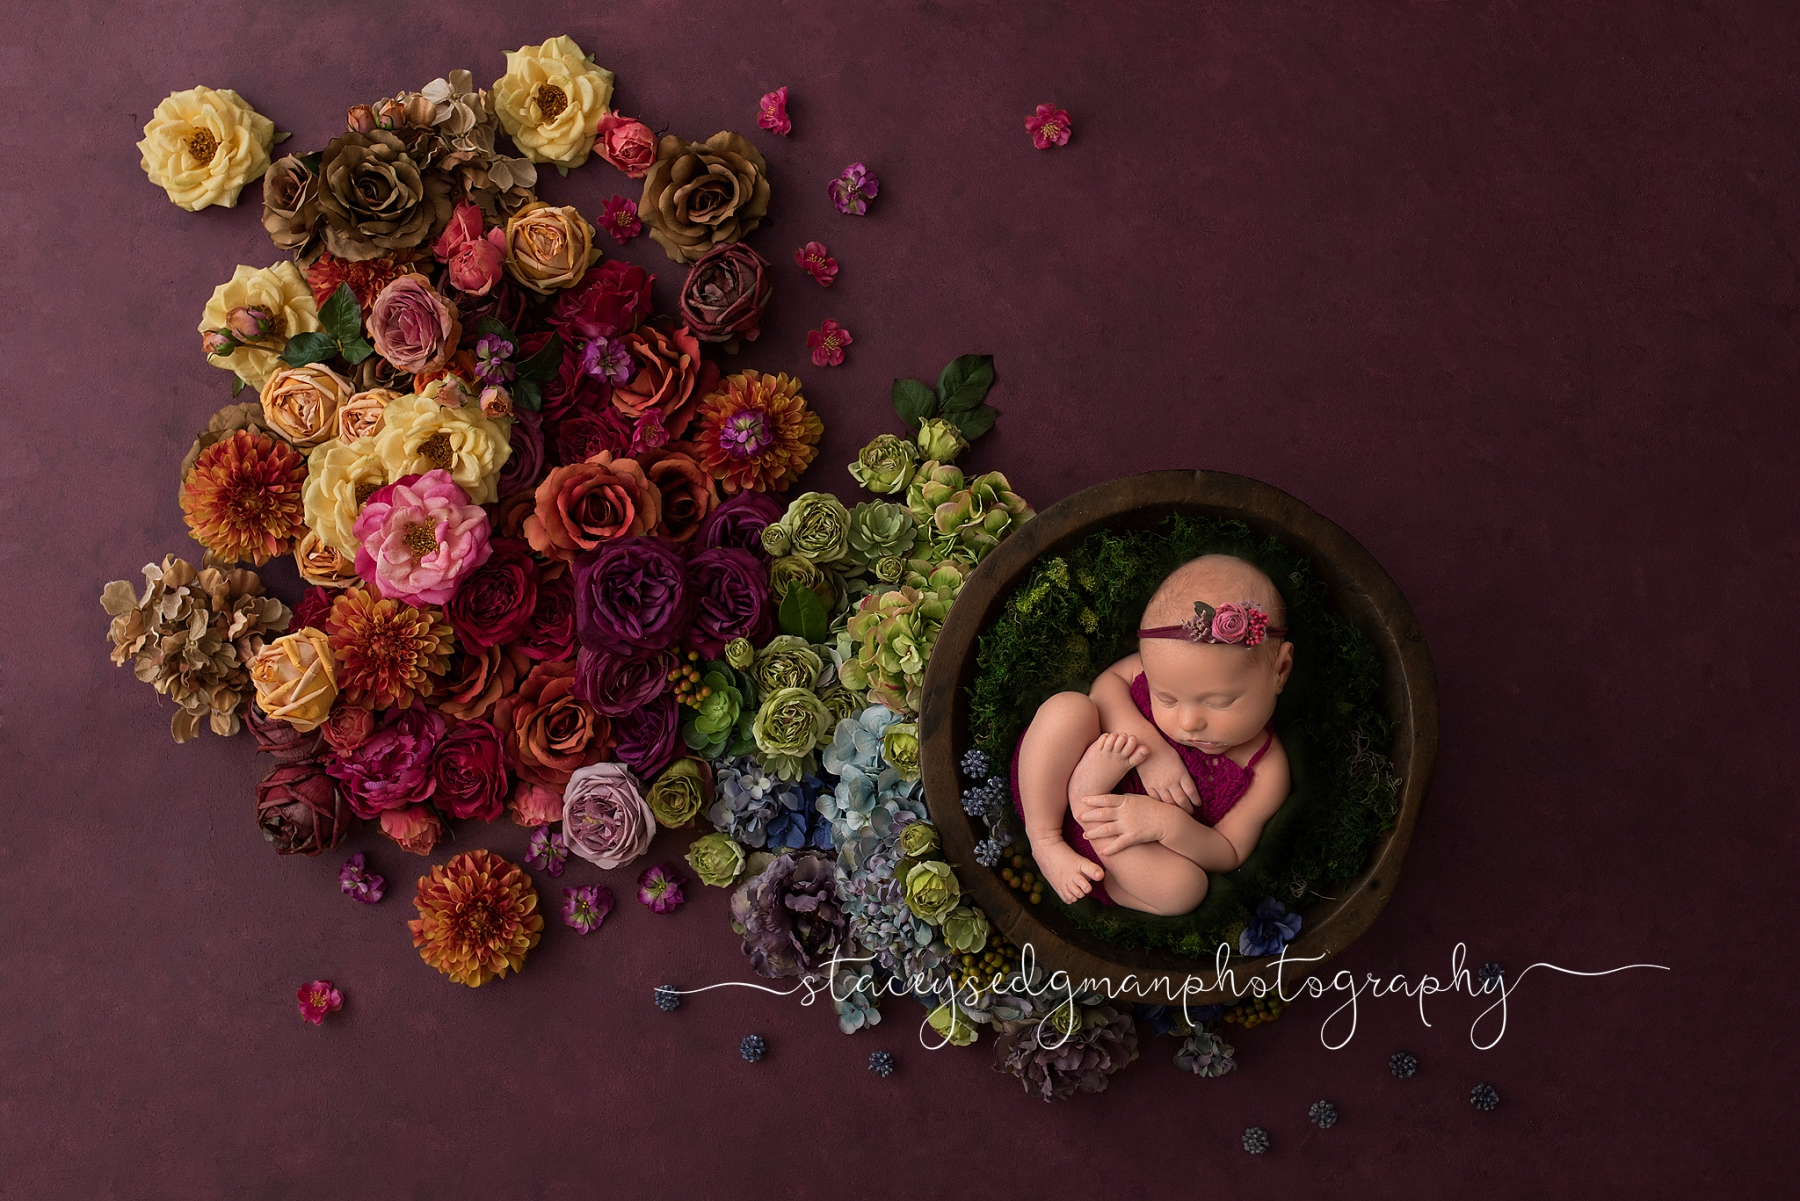 Rainbow Baby in bowl on purple backdrop with rainbow flowers